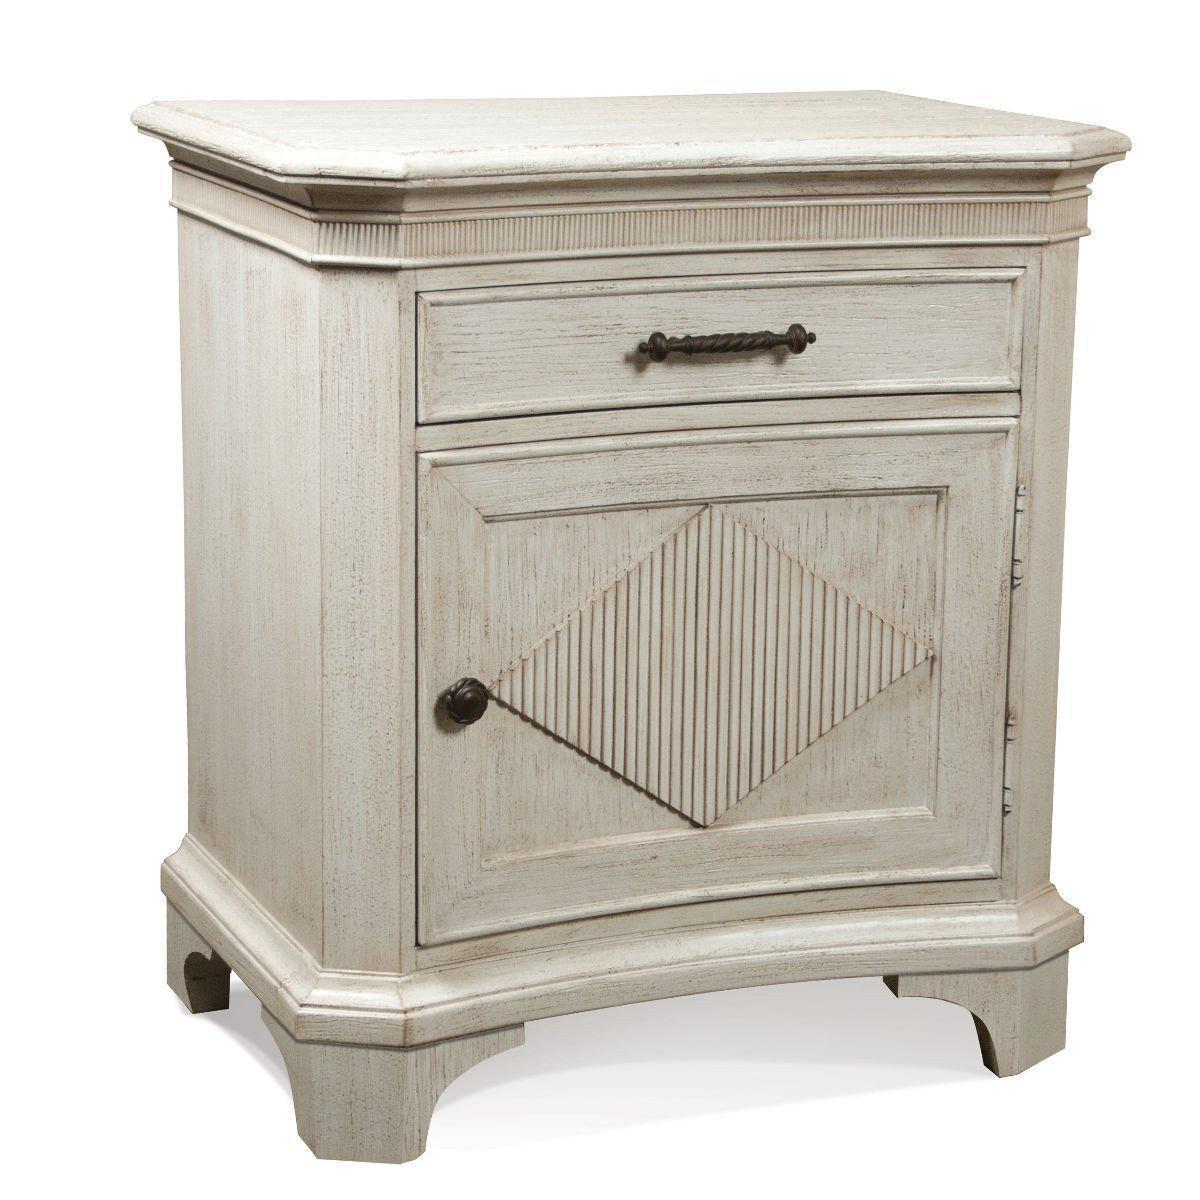 Adeline Door Nightstand